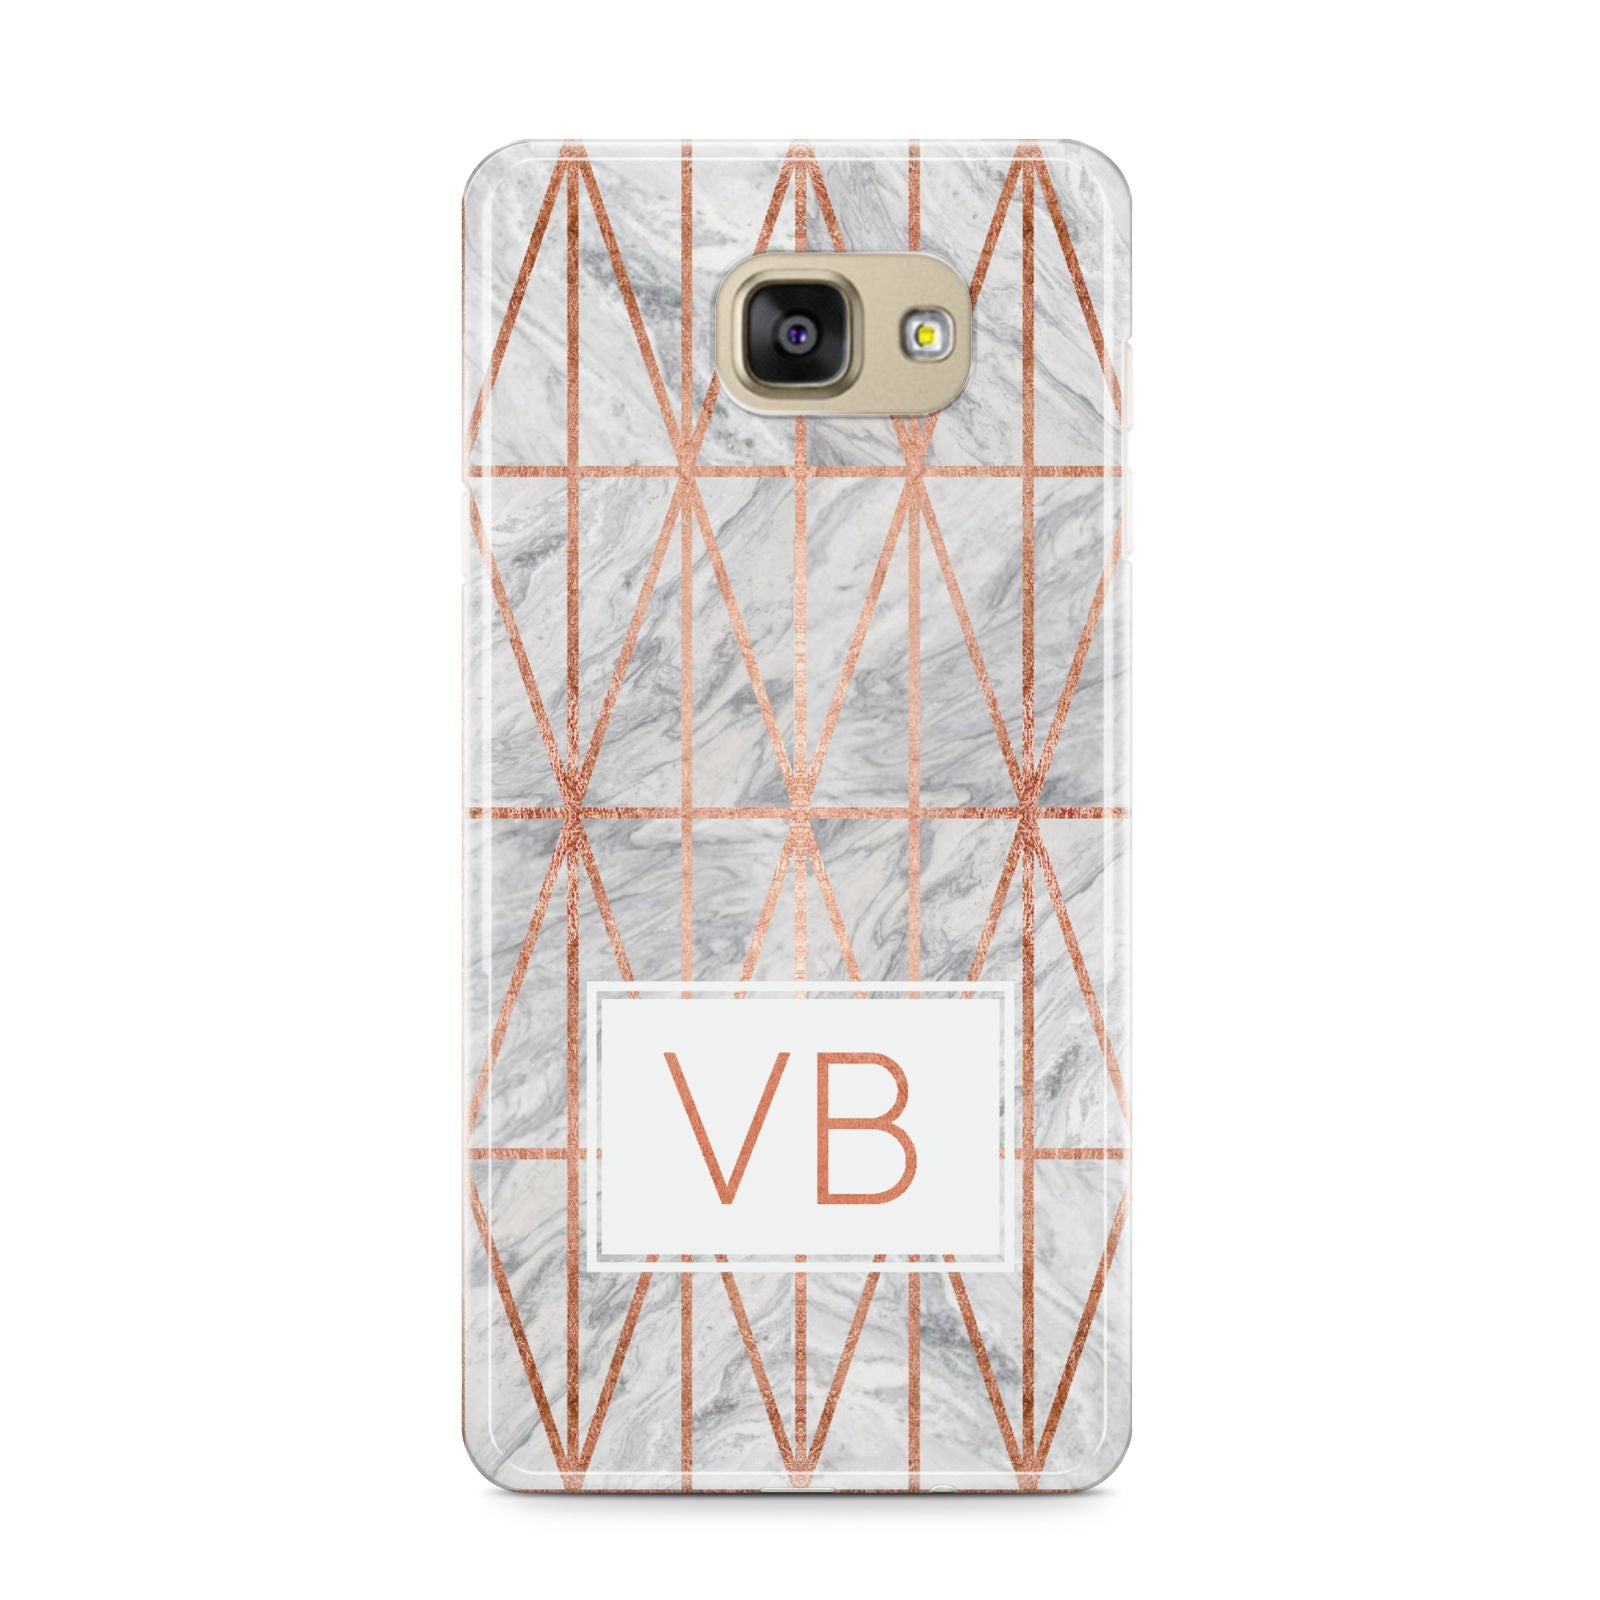 Personalised Triangular Marble Initials Samsung Galaxy A9 2016 Case on gold phone